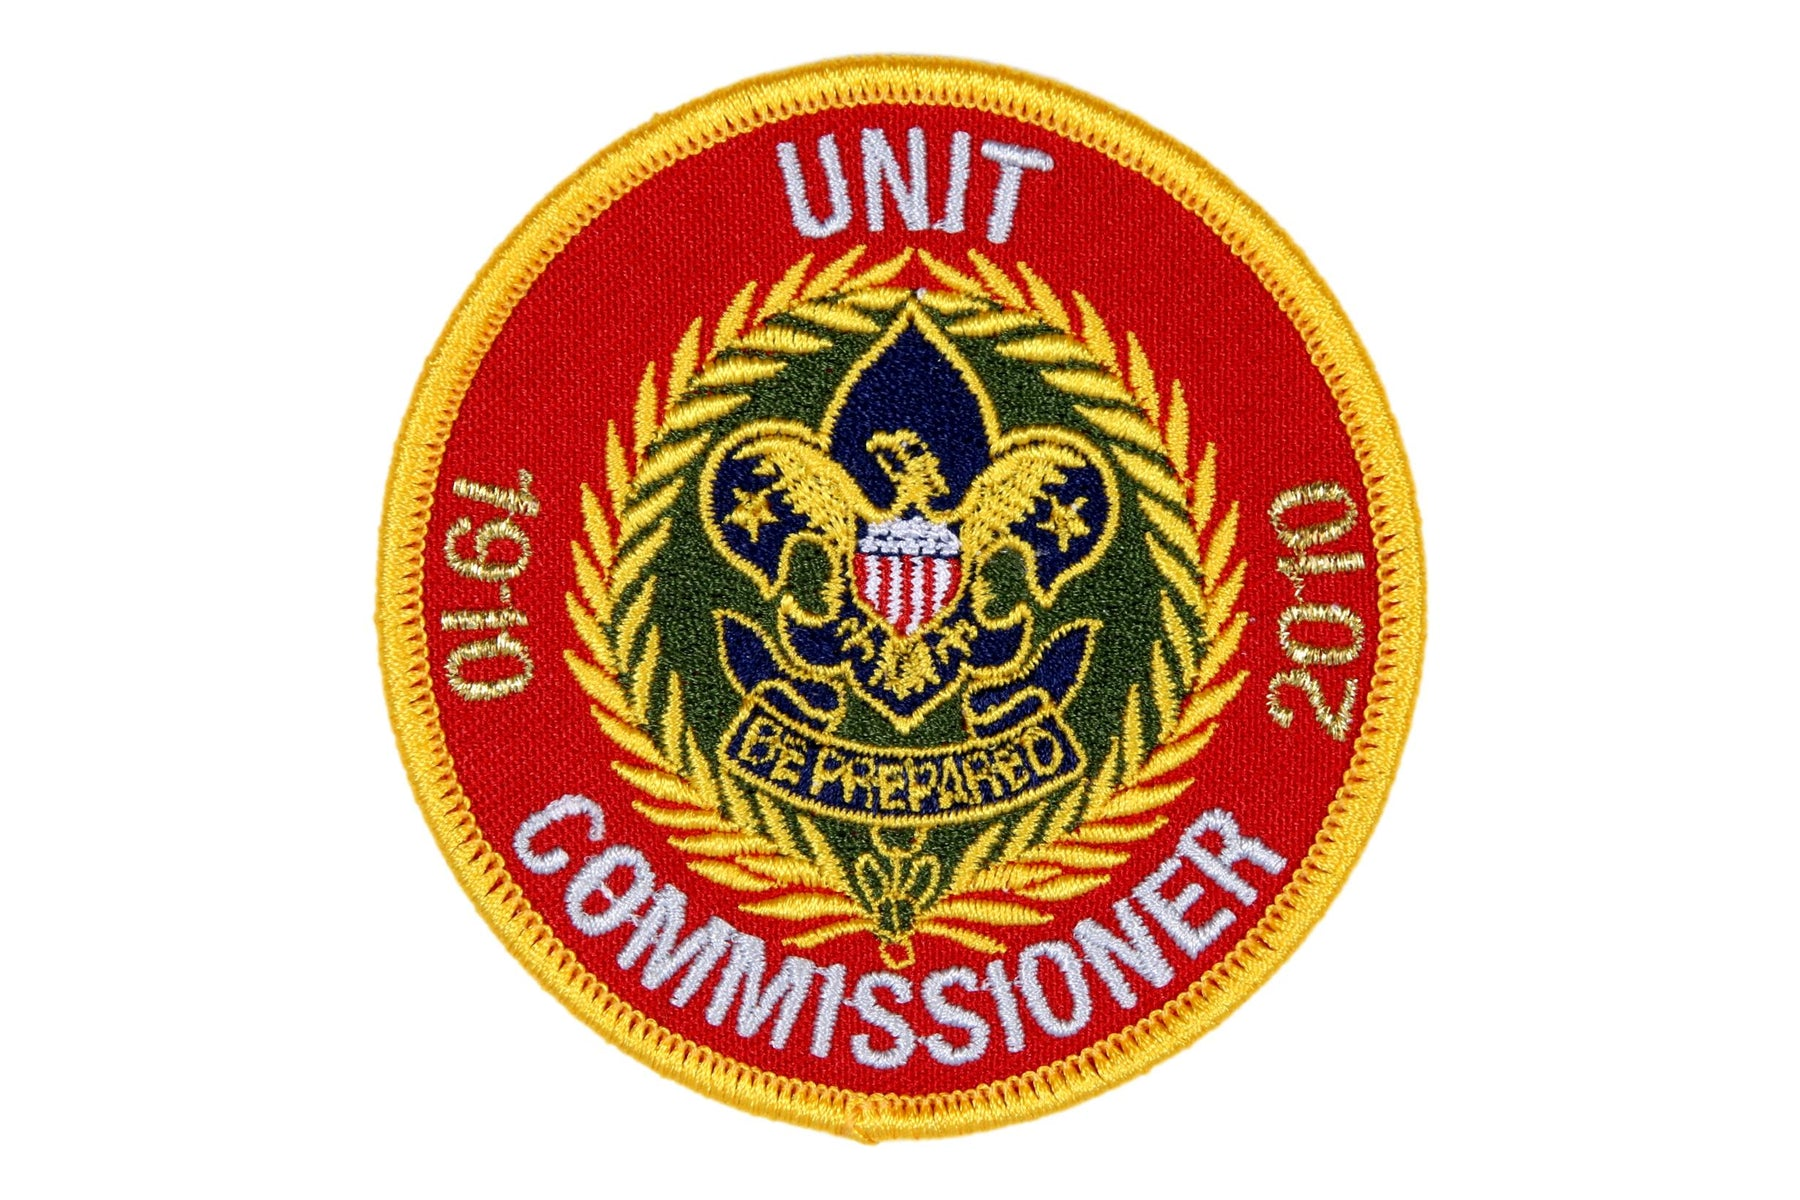 Unit Commissioner Patch 2010